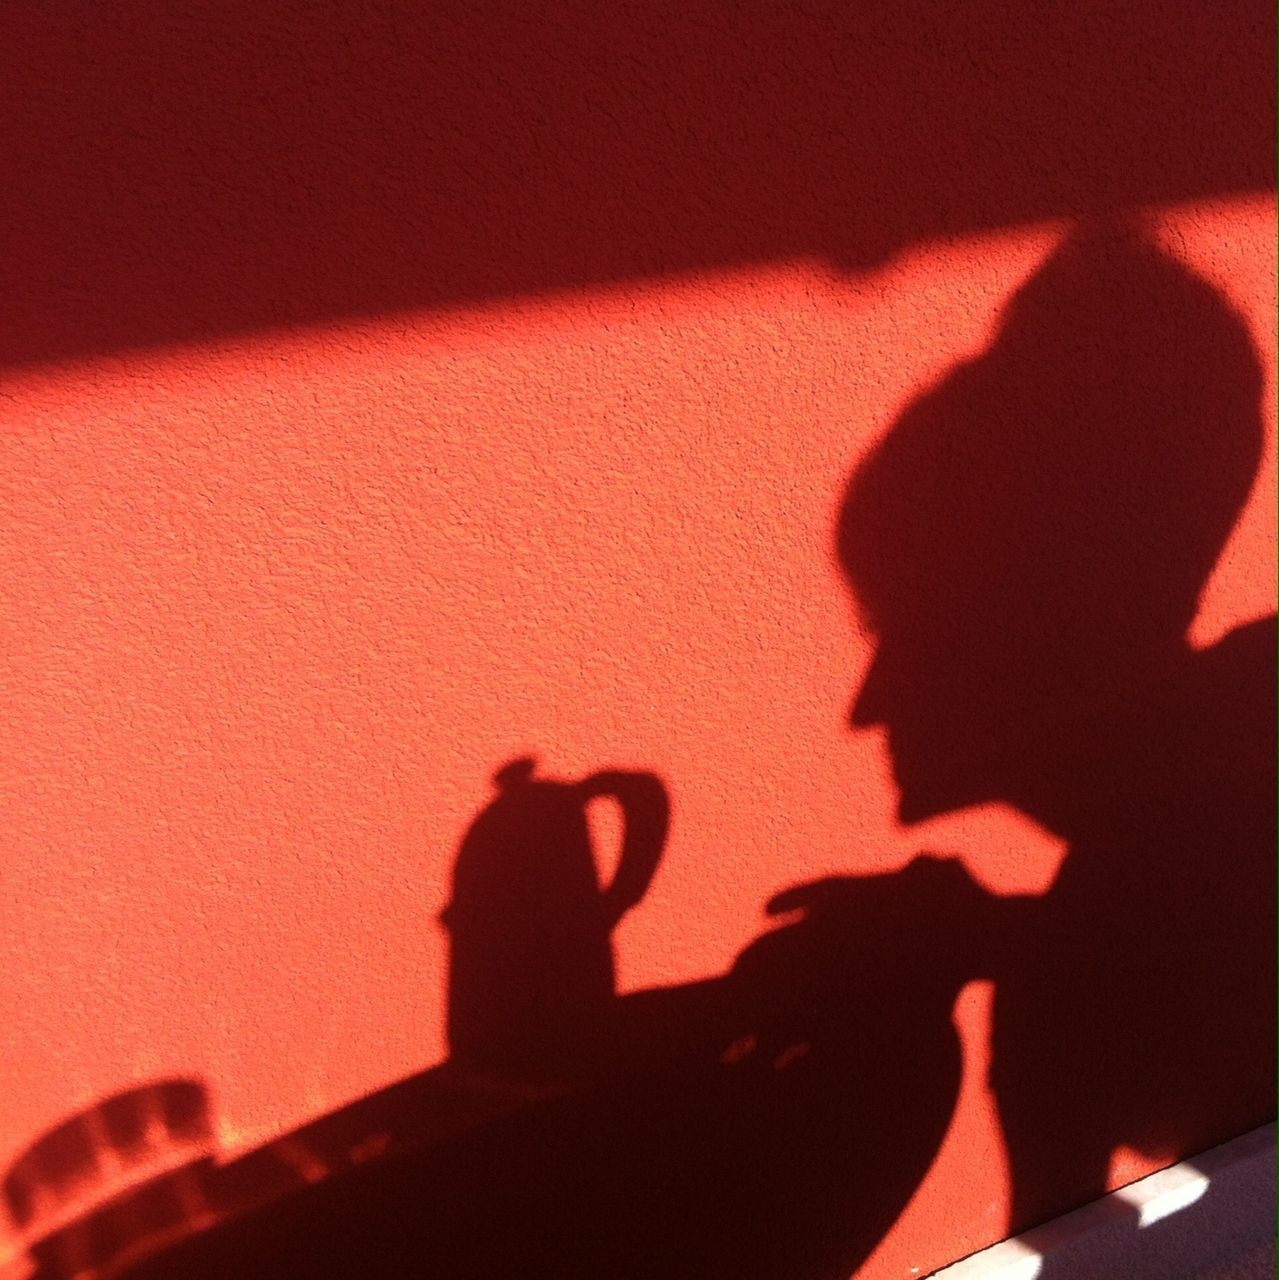 Shadow of woman at table on wall